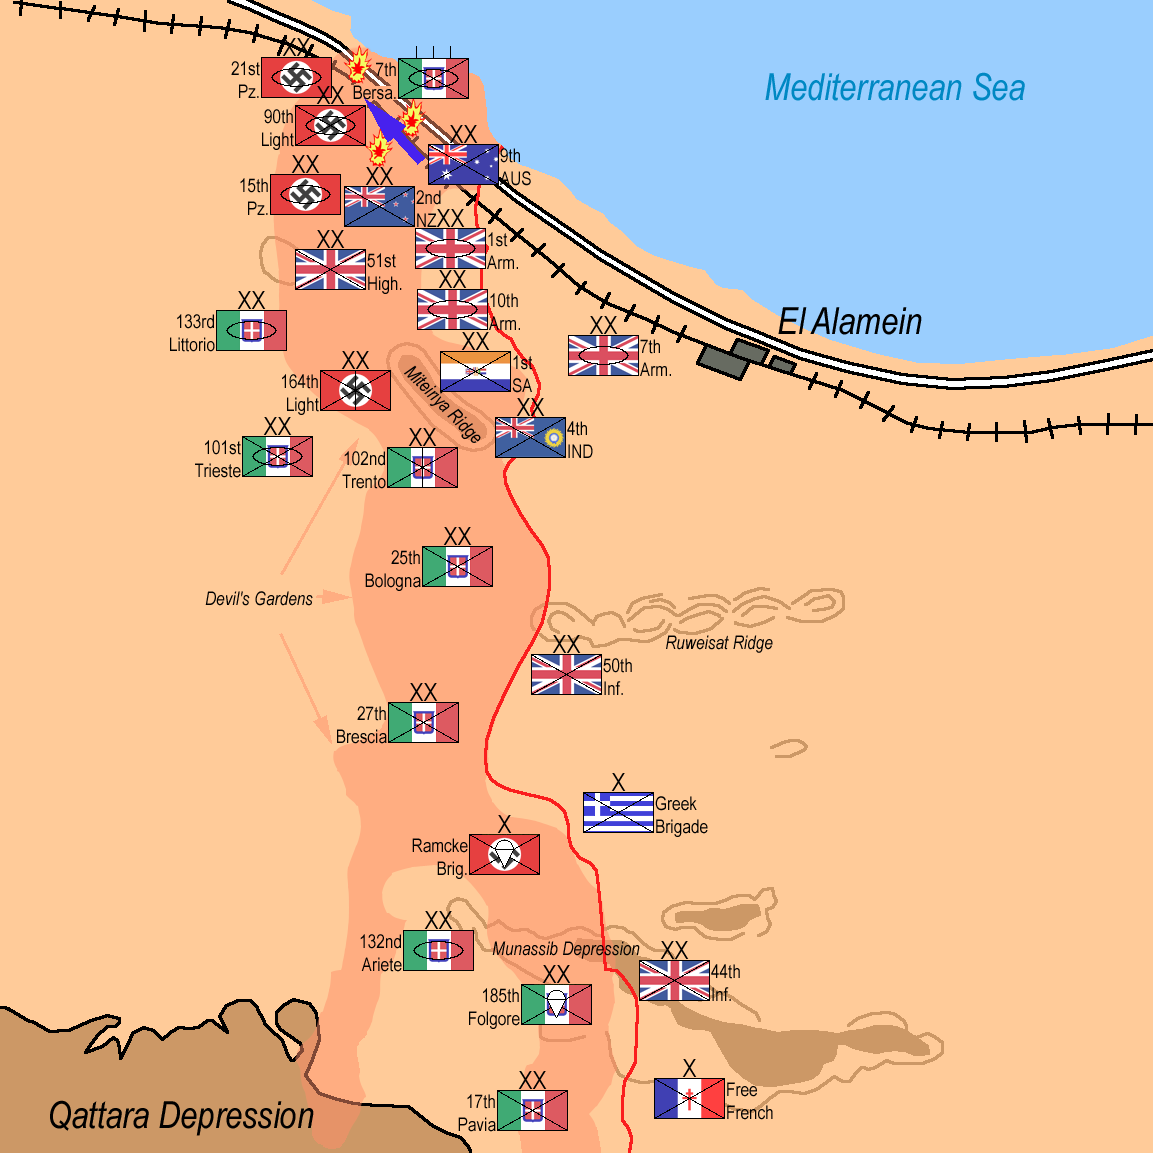 a history of the battle of el alamein Find out more about the history of battle of el alamein, including videos, interesting articles, pictures, historical features and more get all the facts on historycom.